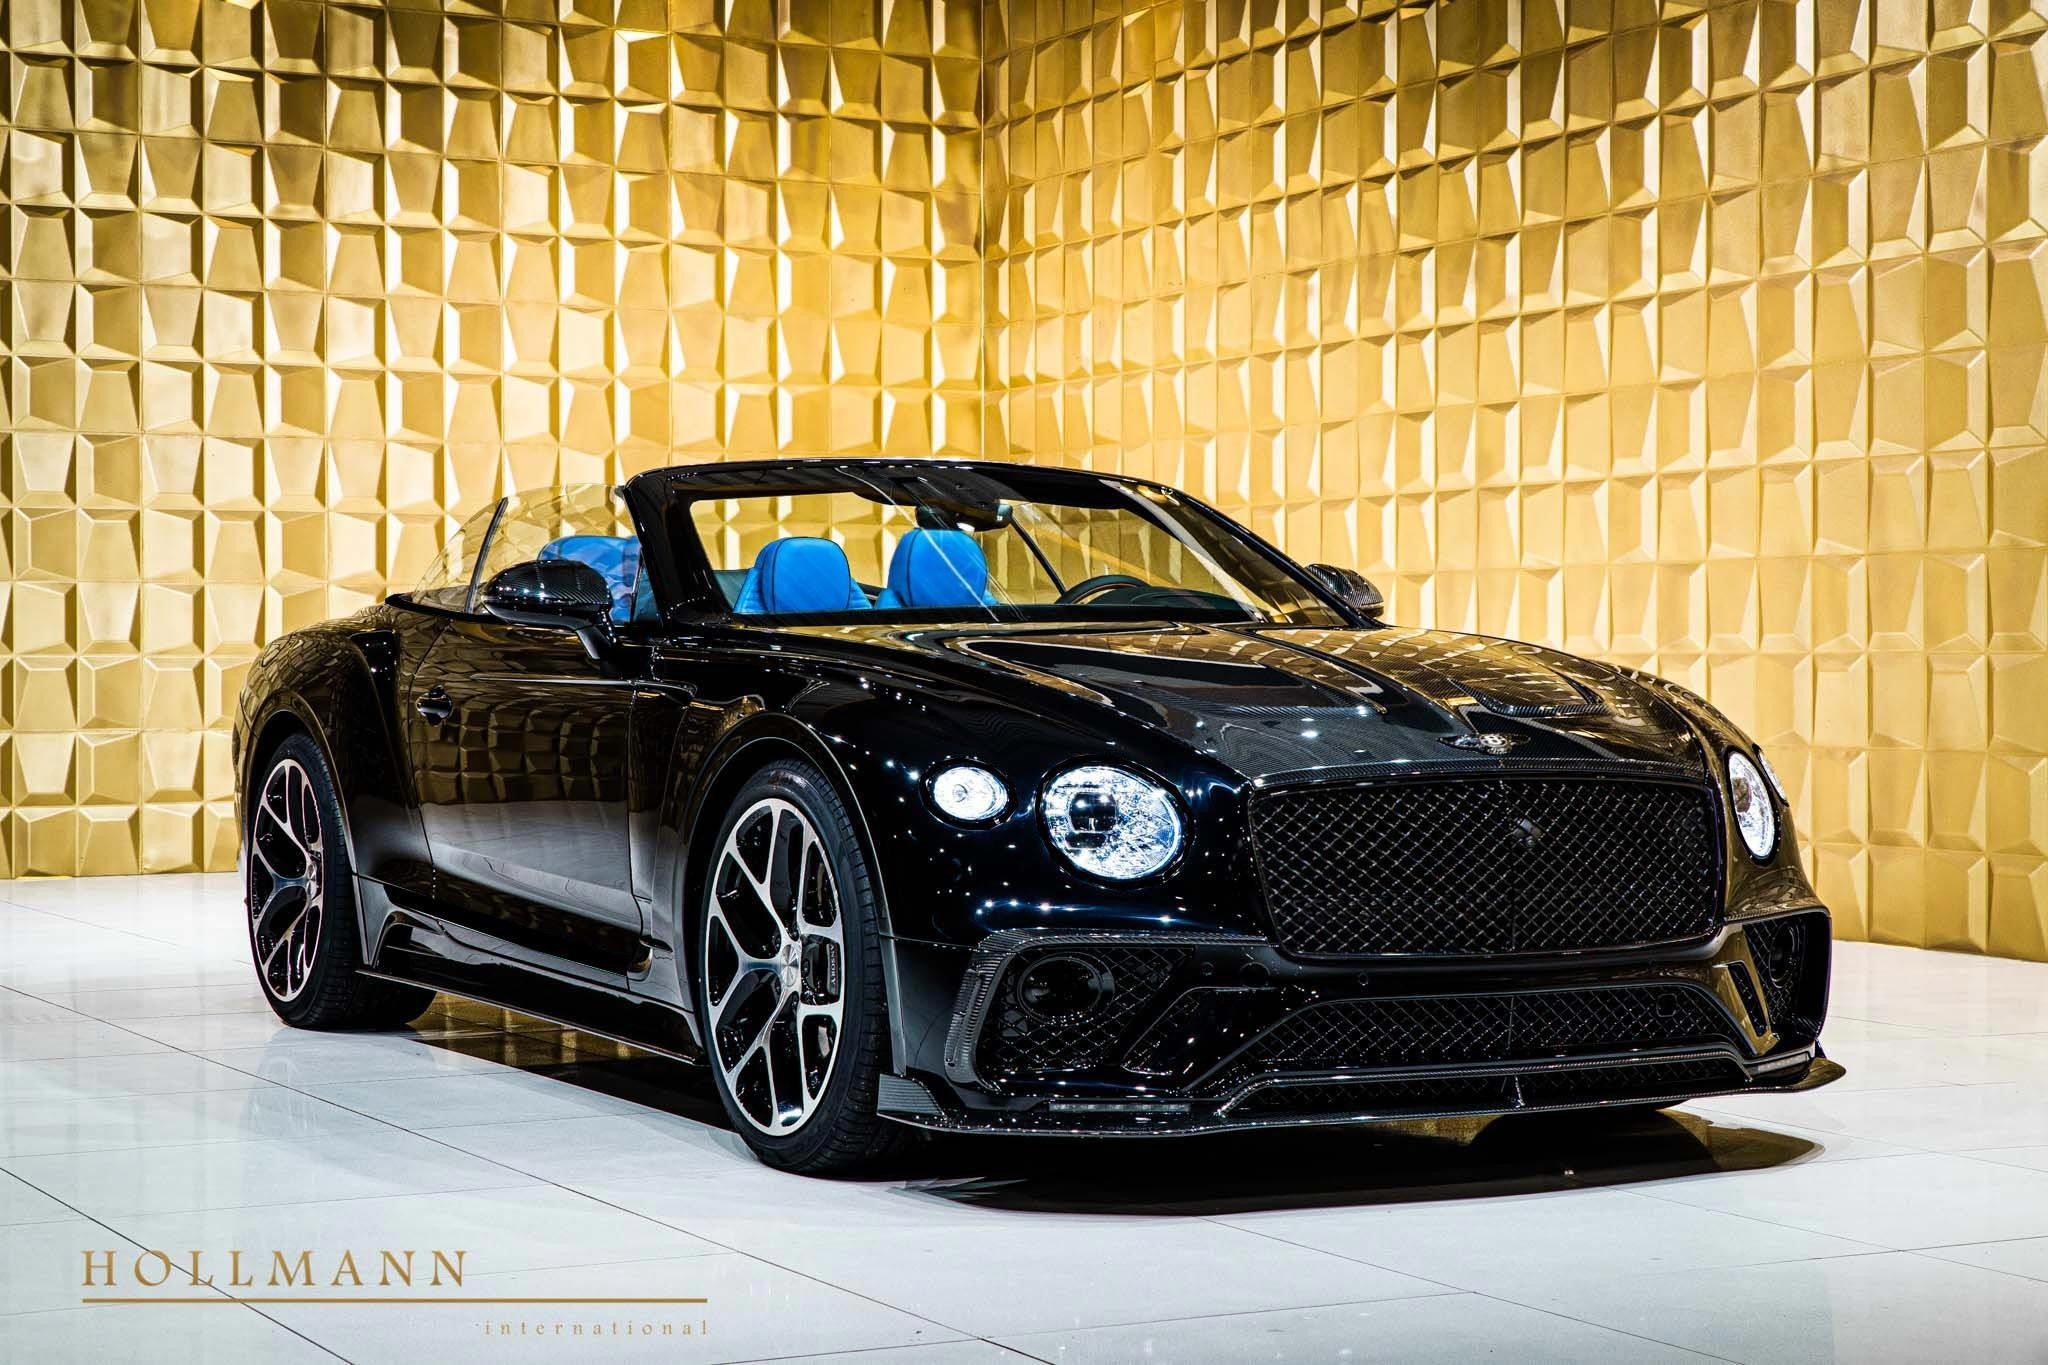 Bentley Continental Gtc First Edition By Mansory Luxury Pulse Cars Germany For Sale On Luxurypulse In 2020 Bentley Continental Bentley Gt Best Luxury Cars